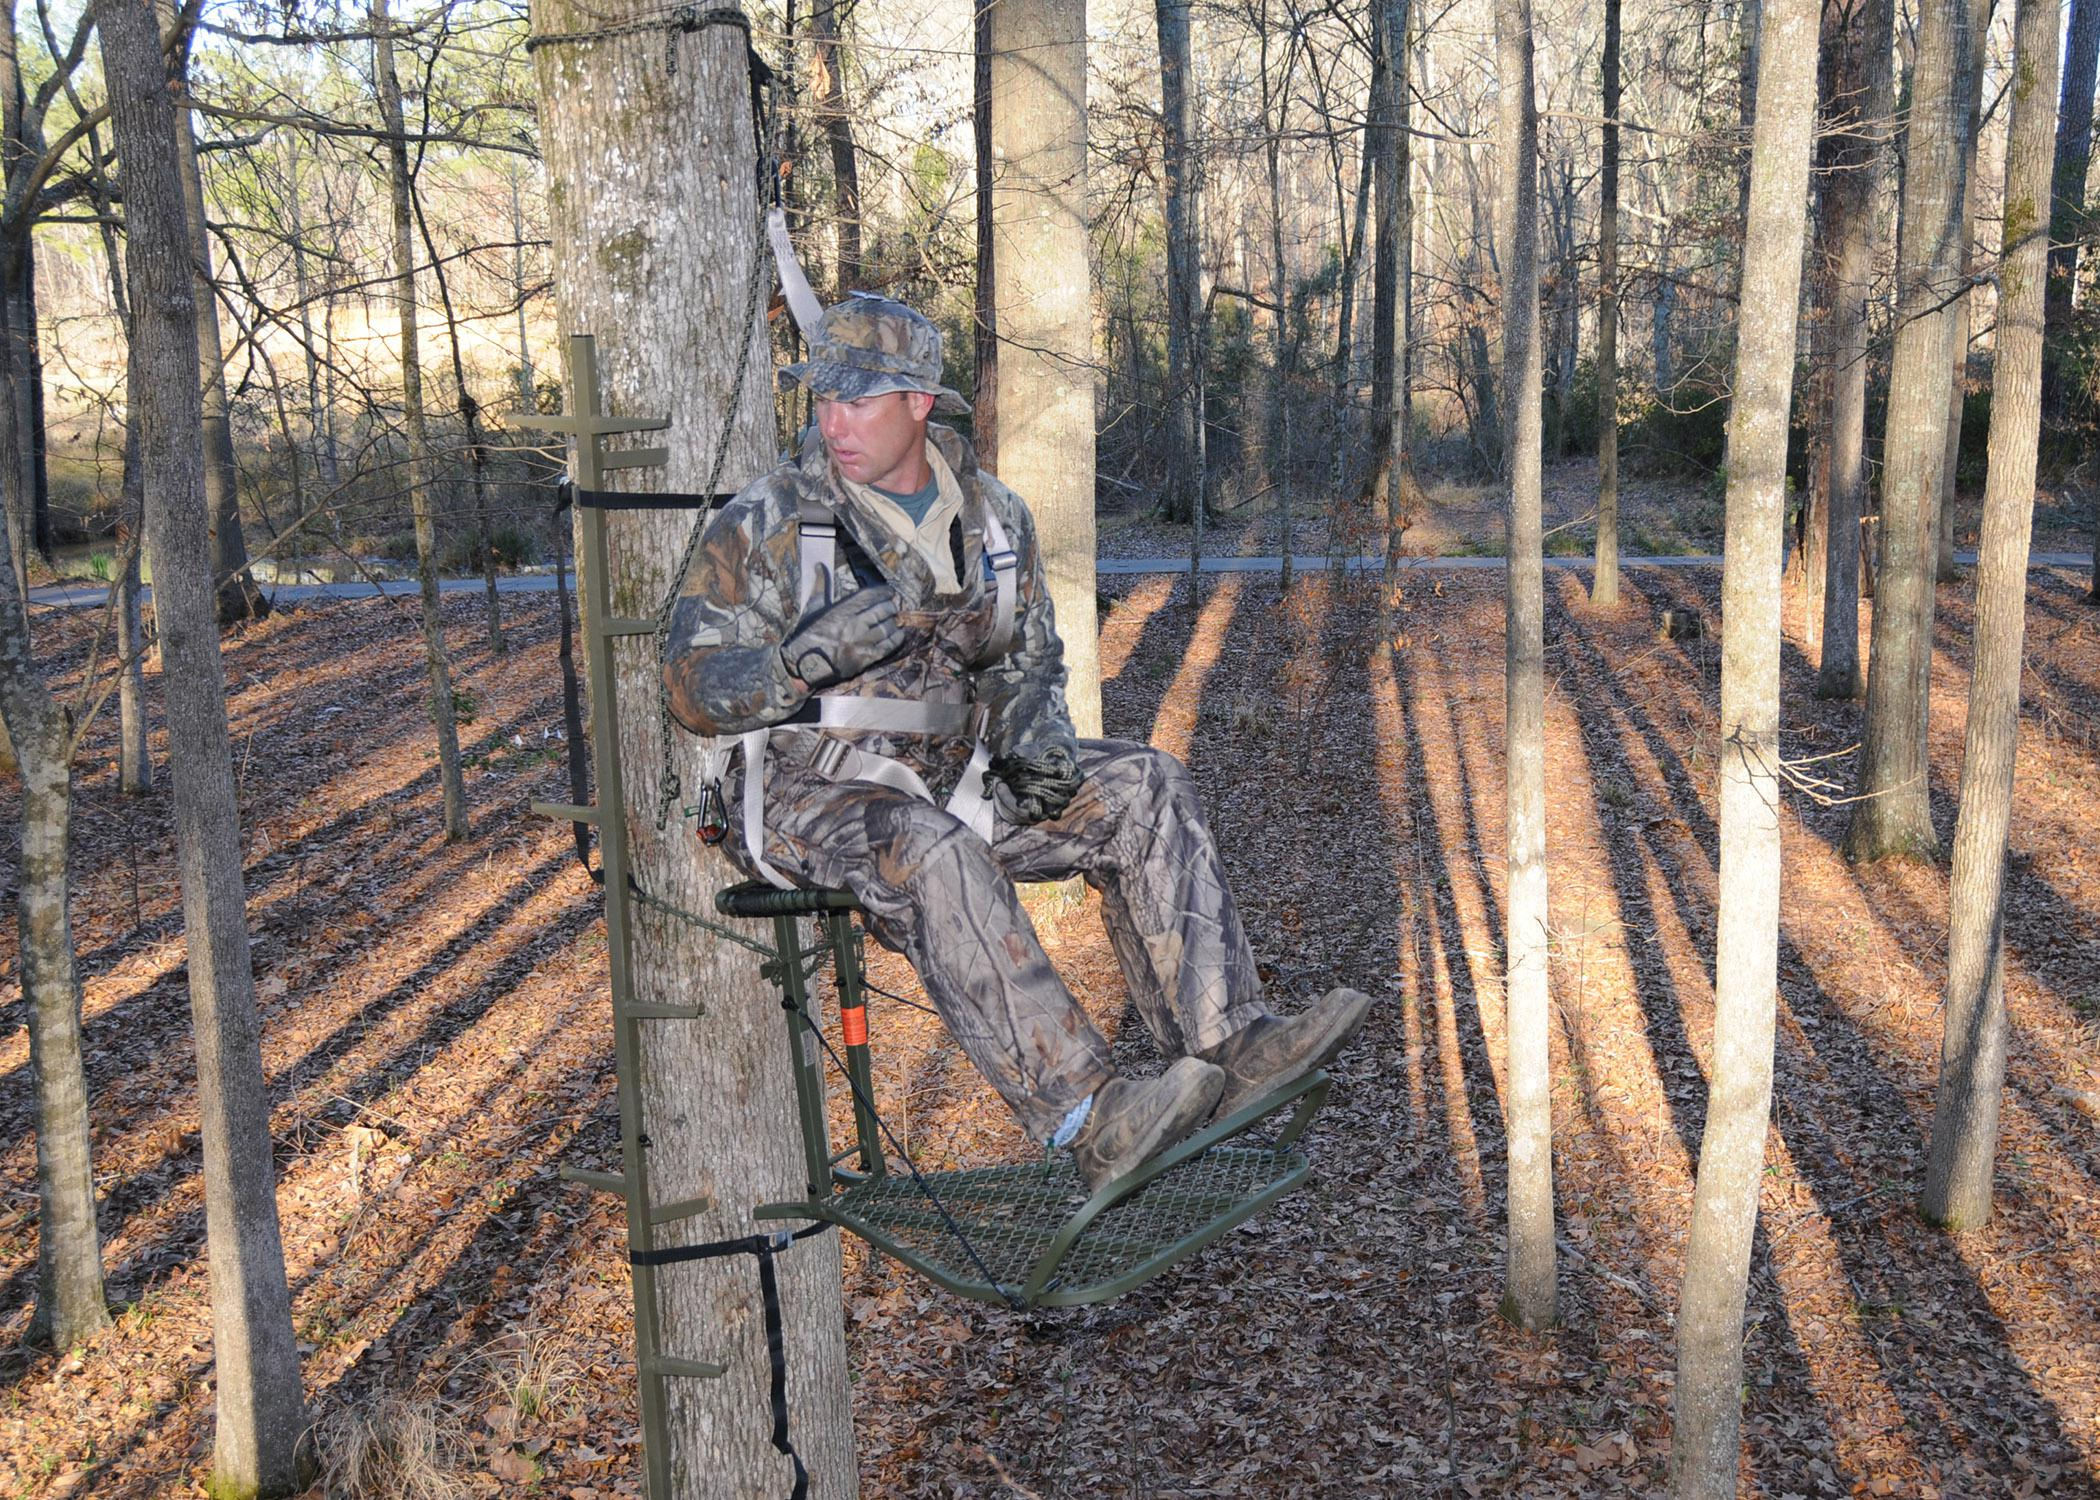 John Louk with the Treestand Manufacturer's Association demonstrates a properly secured safety harness when using a portable, lock-on tree stand. (File photo courtesy of the Treestand Manufacturer's Association)